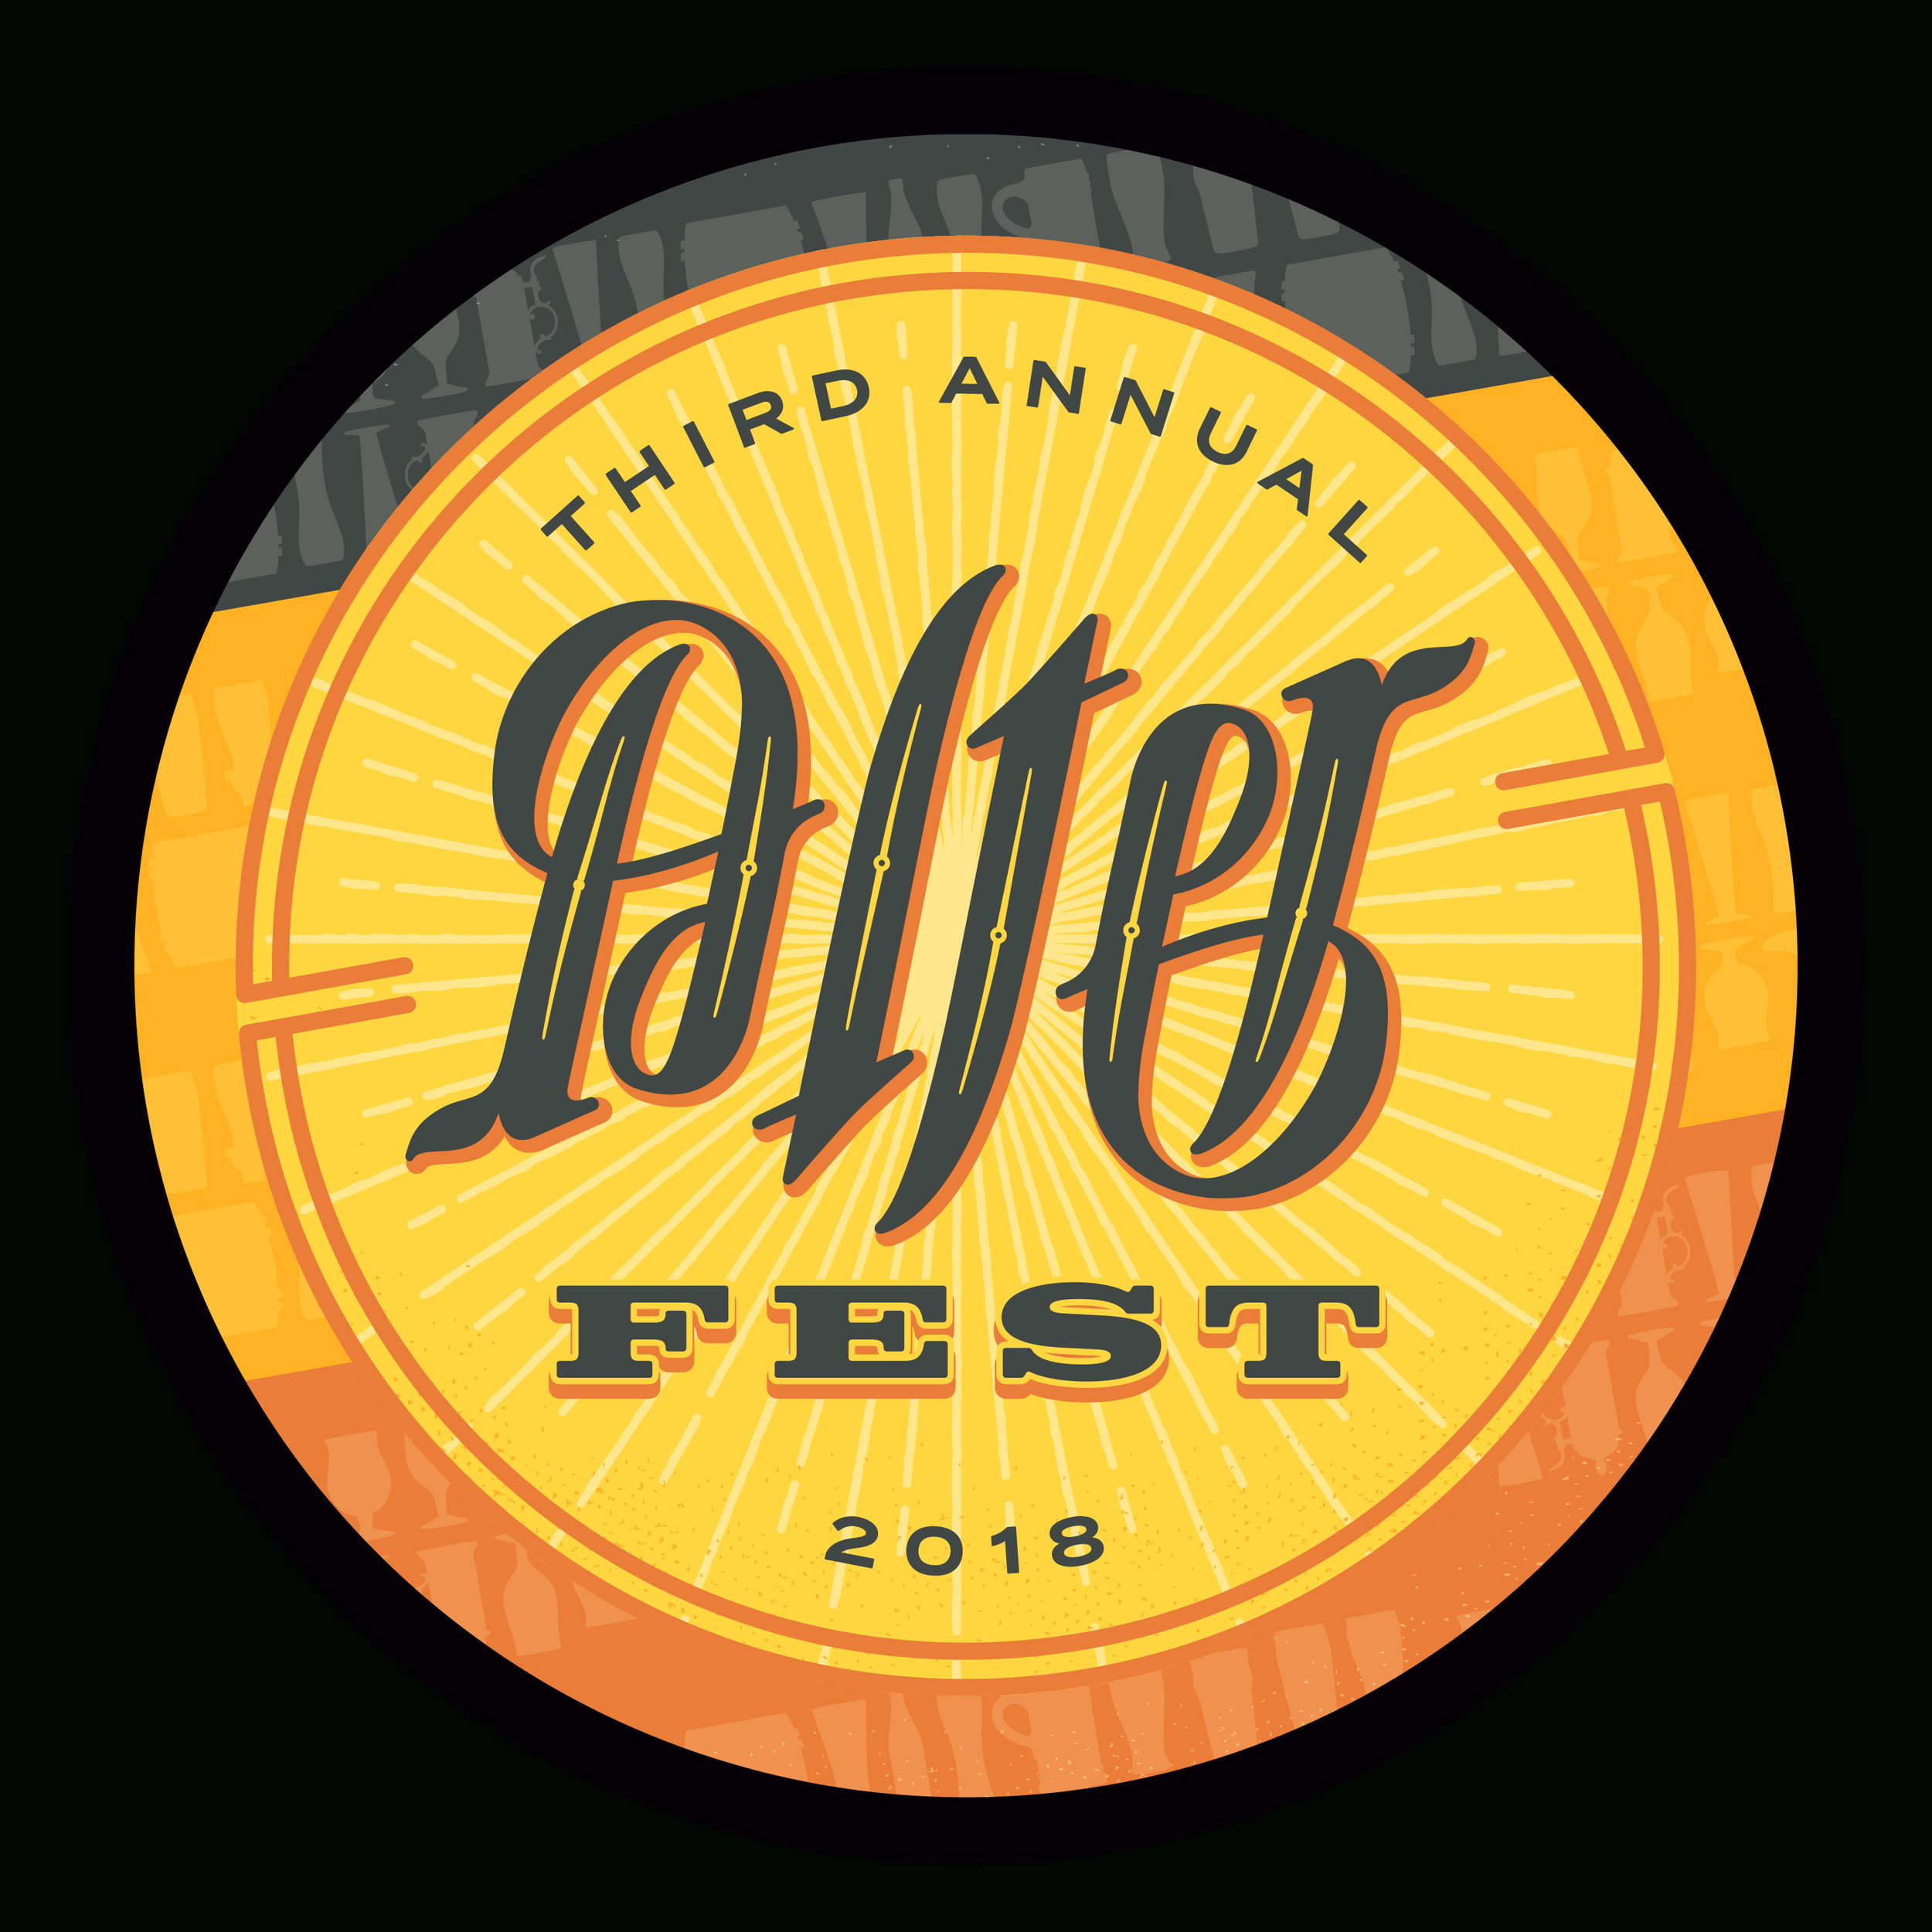 October 6th, 5-10pm - 21 and over  Alter Brewing Co. - 2300 Wisconsin, Downers Grove, 60515  Tickets $20 (online) - $25 at the door - Includes an 2 beers and a special Alter stainless steel pint glass.